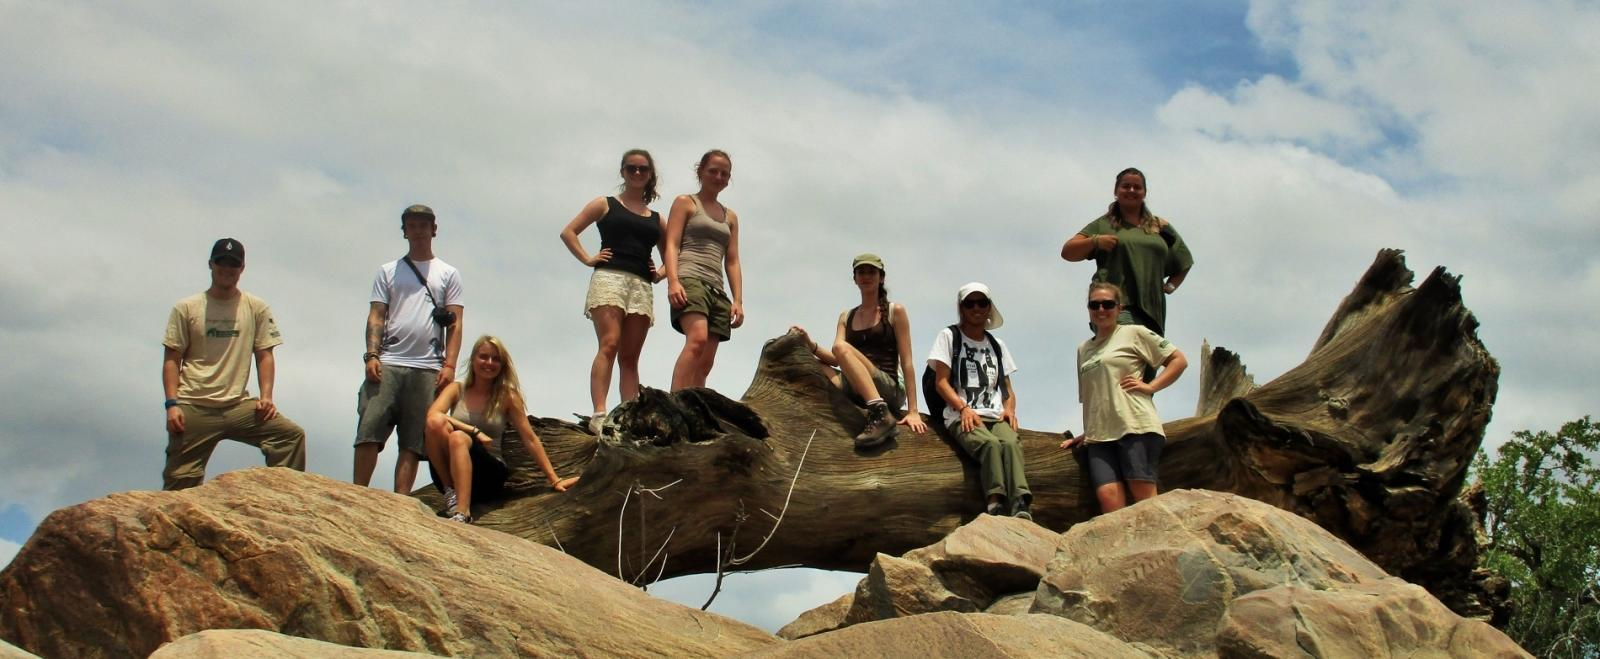 A group of volunteers helps with conservation work in Botswana for teenagers